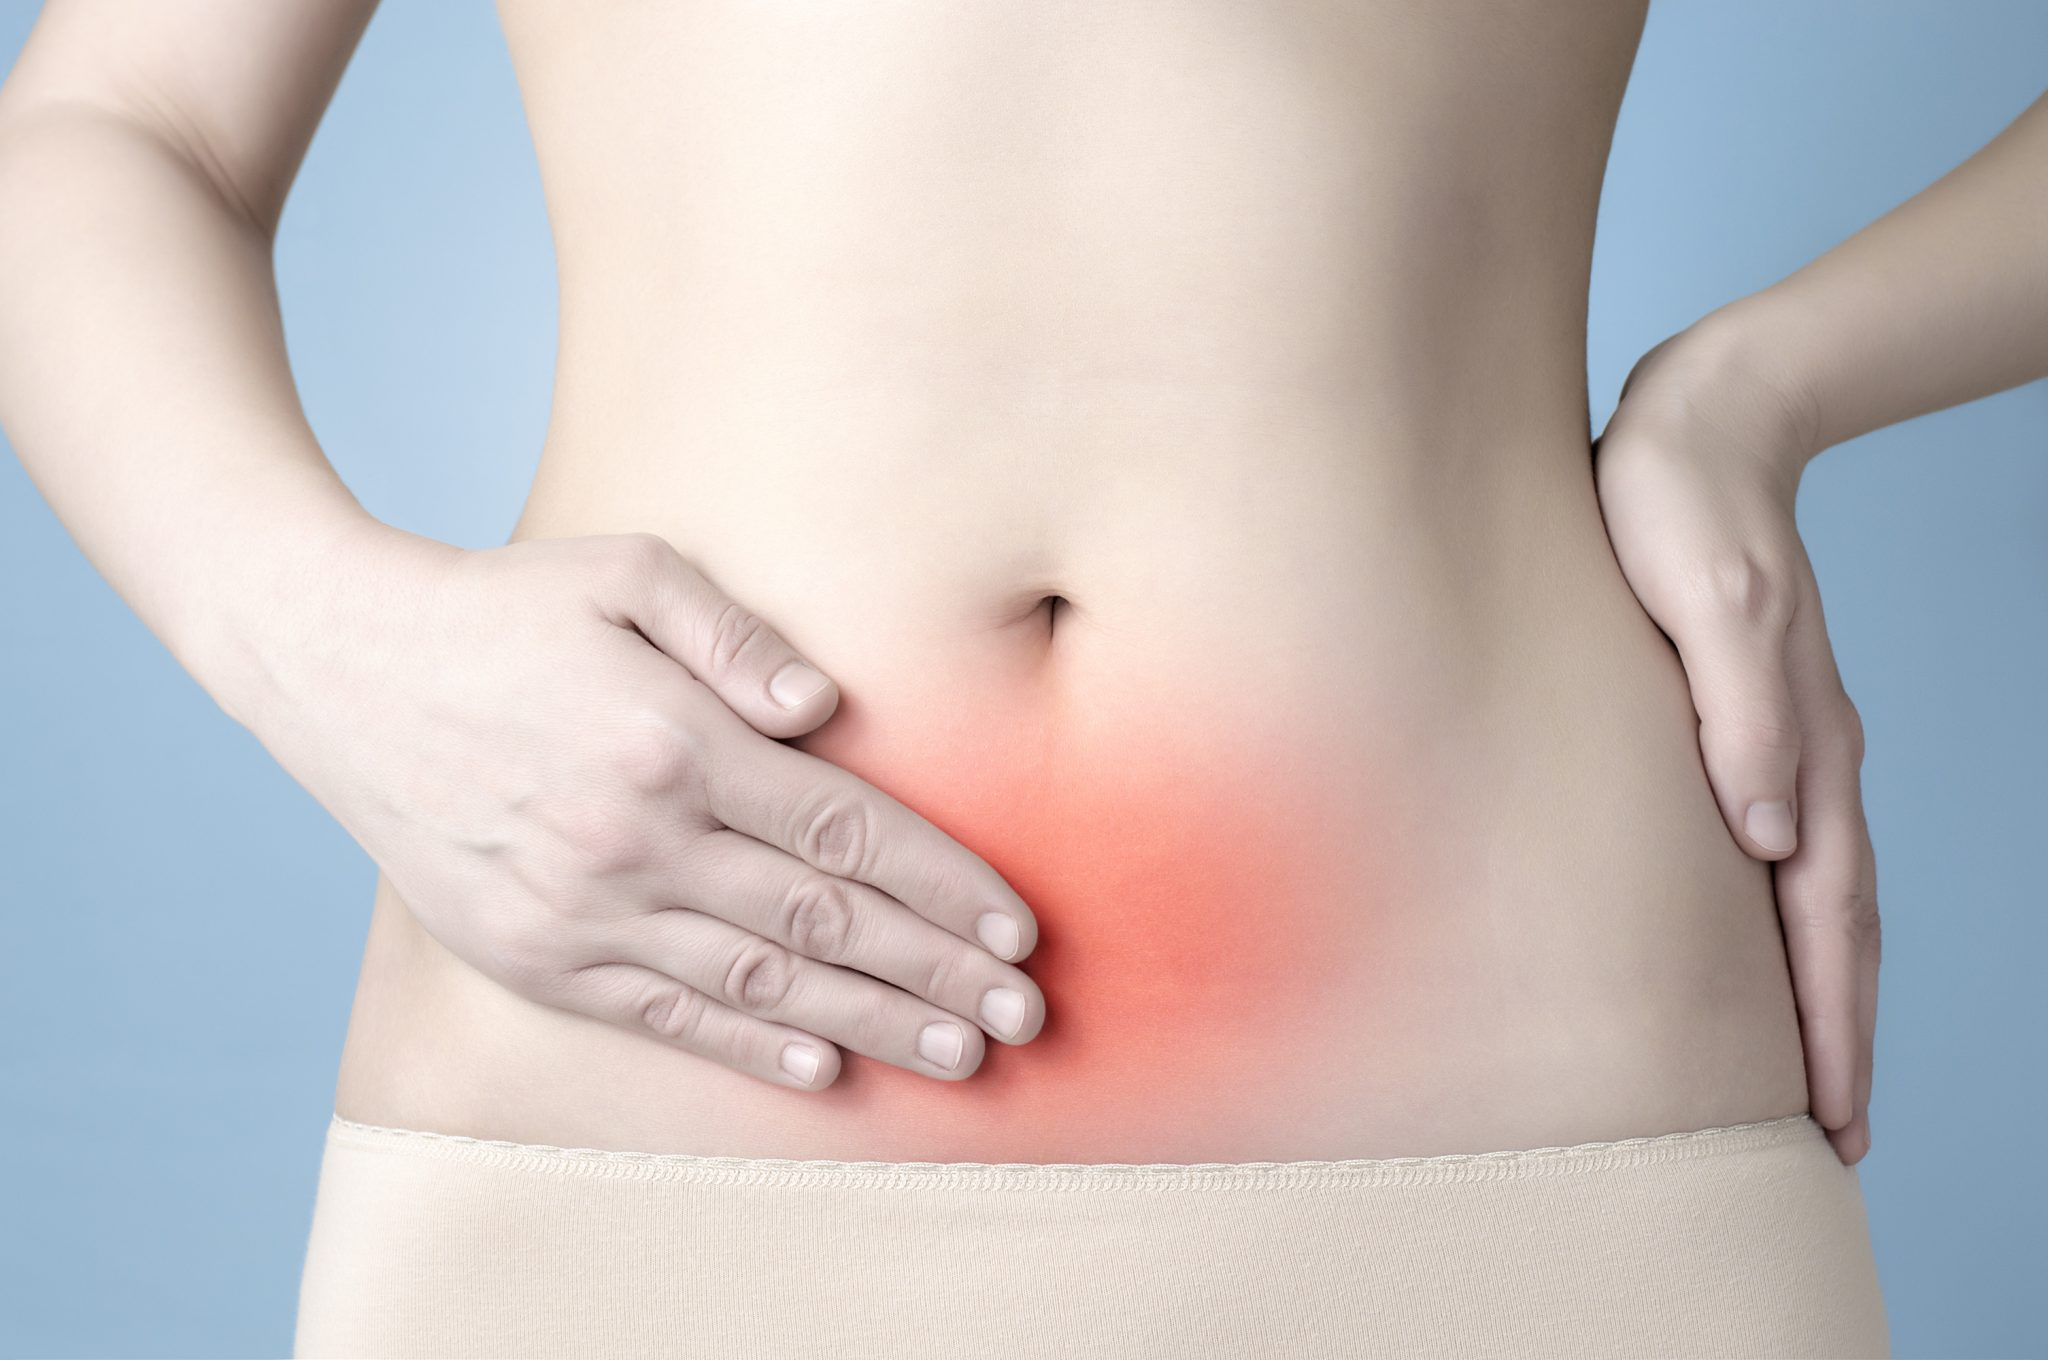 endometriosis pain treatment